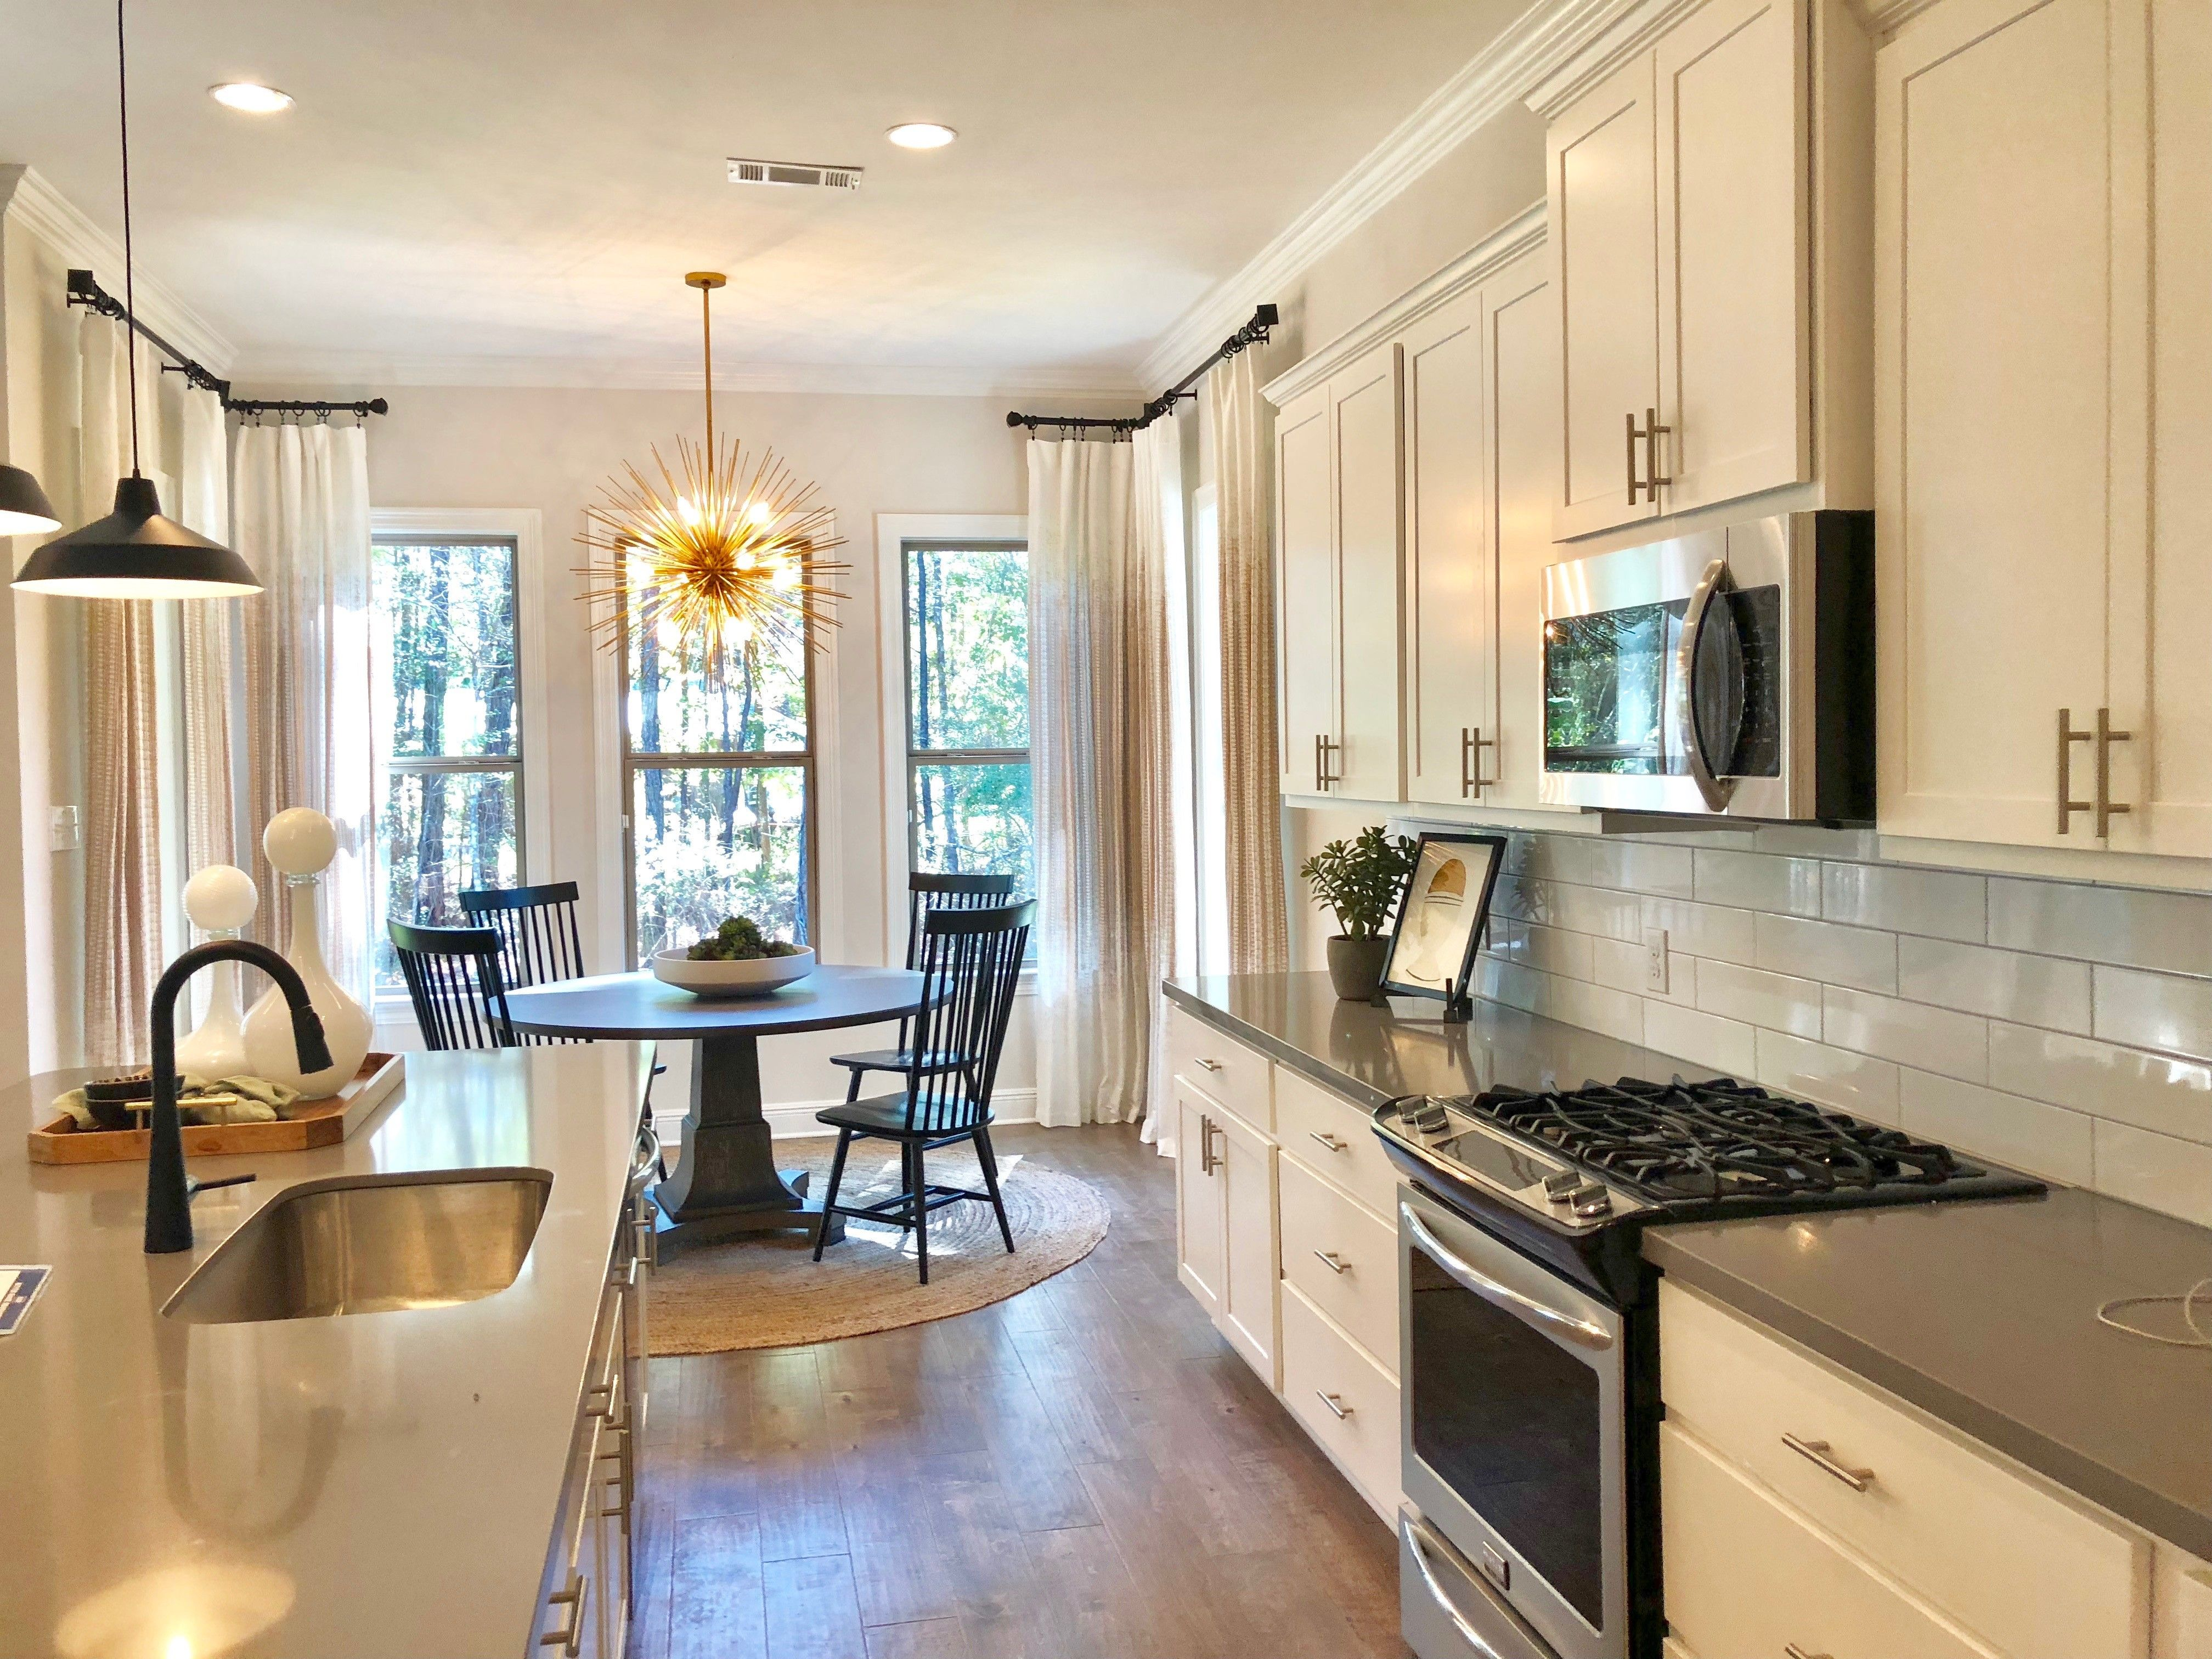 What S For Dinner This Kitchen Is The Chef S Dream With Large Kitchen Island Gas Stove And Plenty Of Ca Large Kitchen Island New Home Communities New Homes